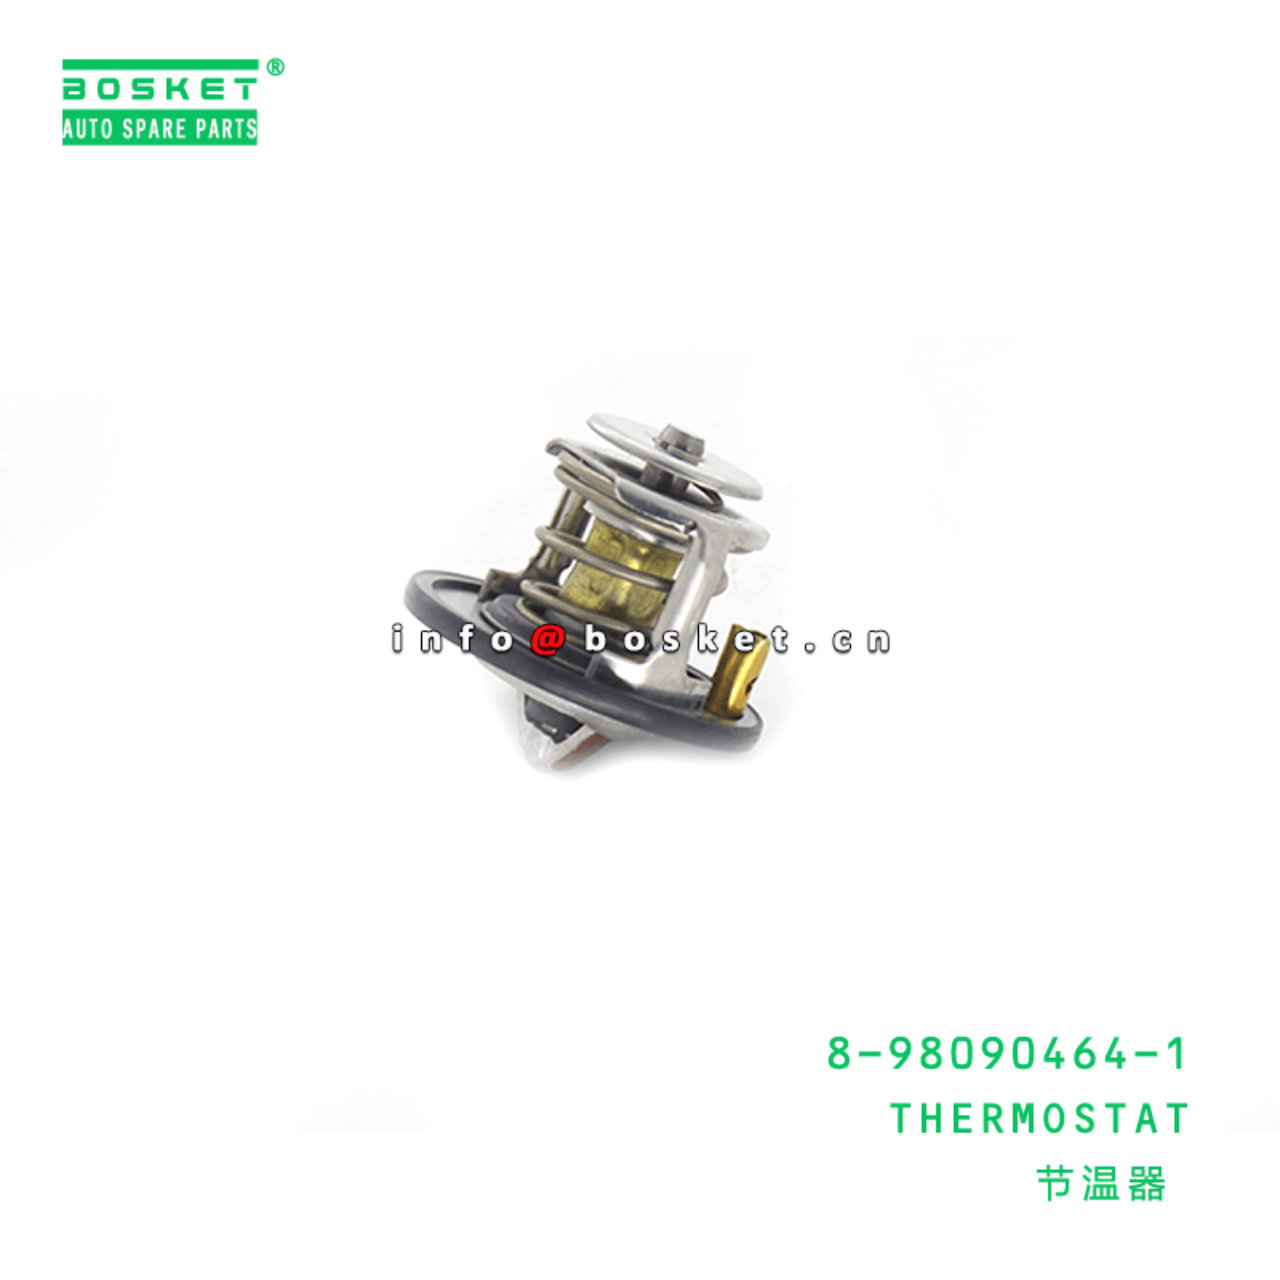 8-98090464-1 Thermostat 8980904641 Suitable for ISUZU XE 6HK1